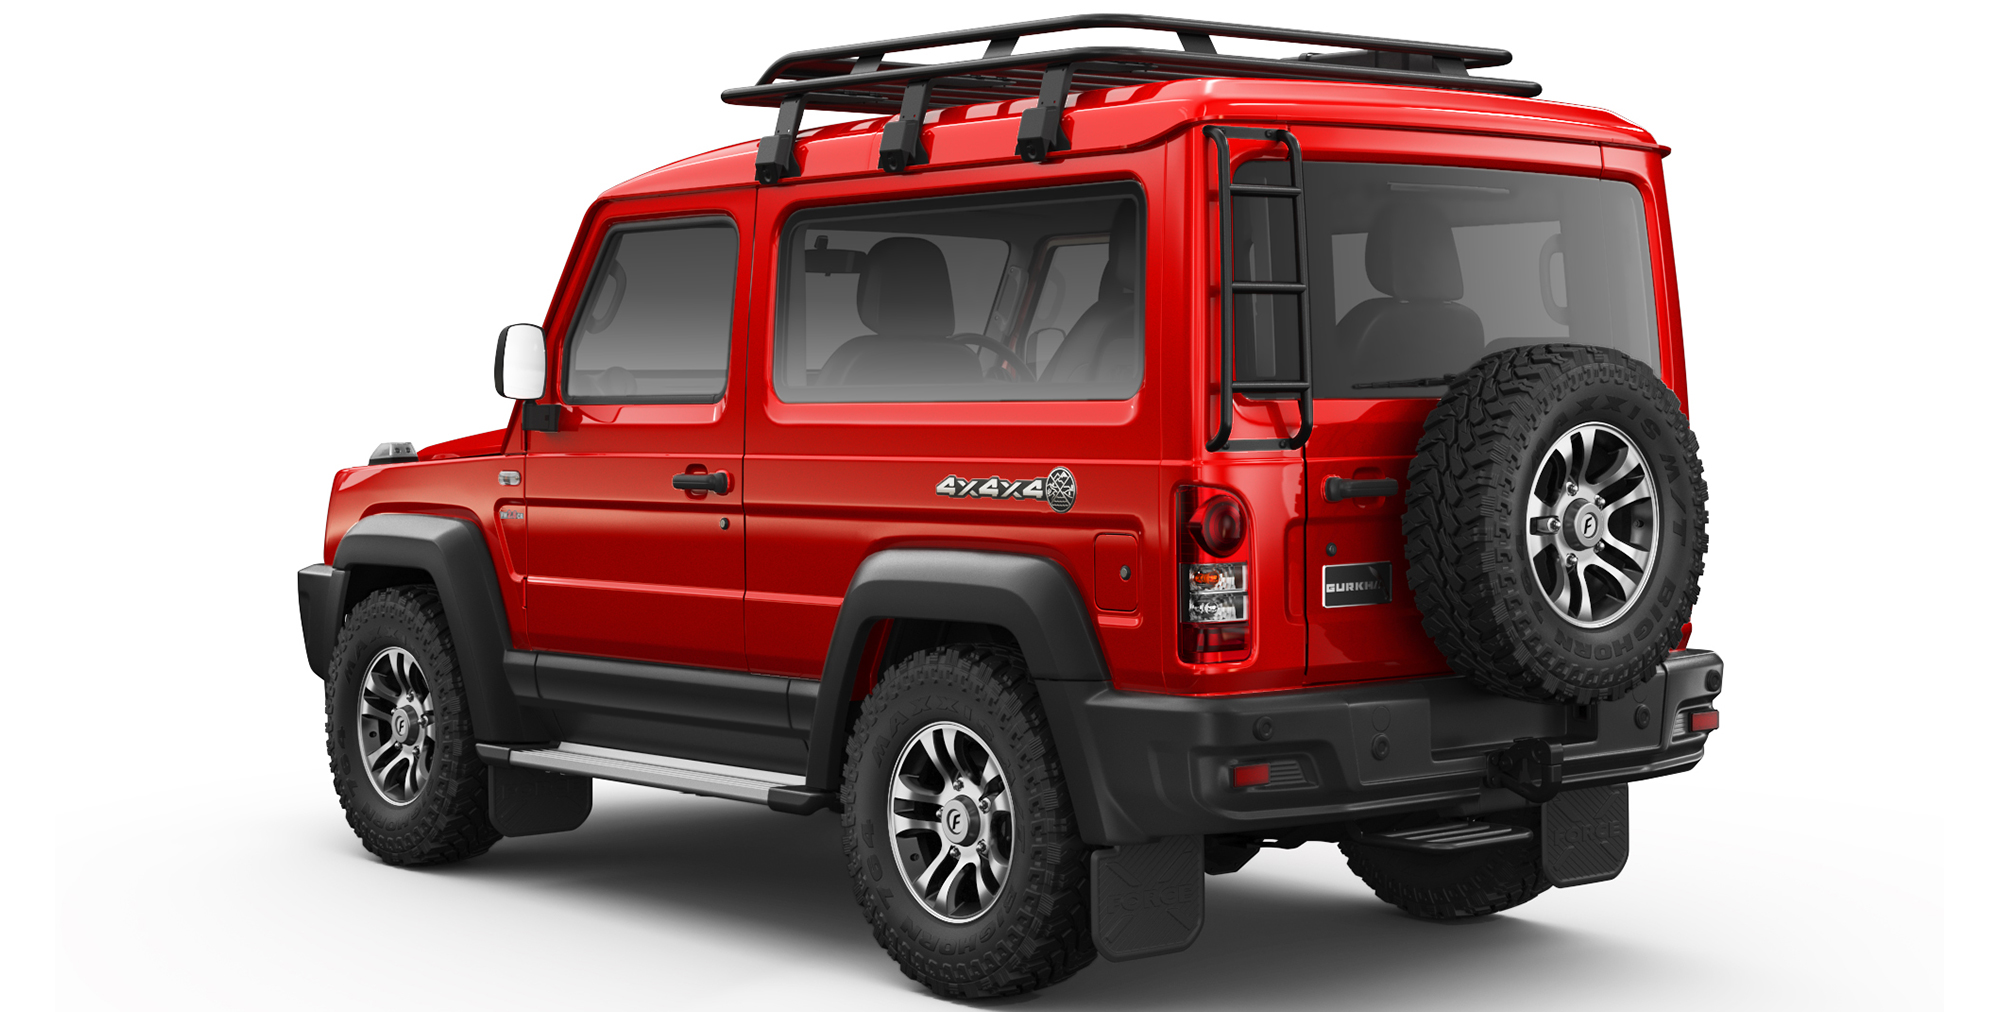 Red Colour Gurkha 4x4x4 car in india with Rear Ladder